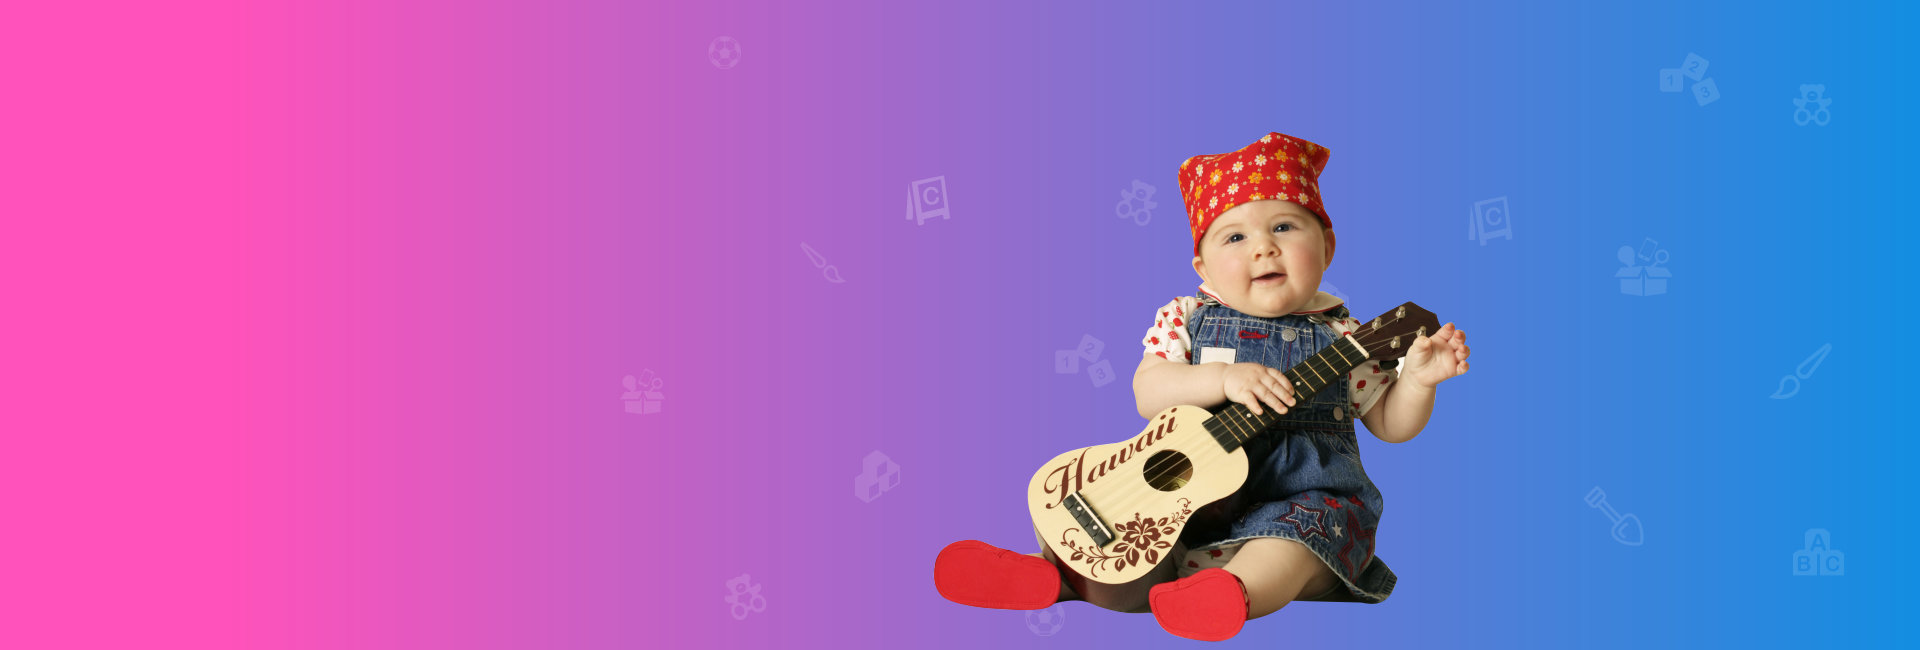 infant holding a guitar